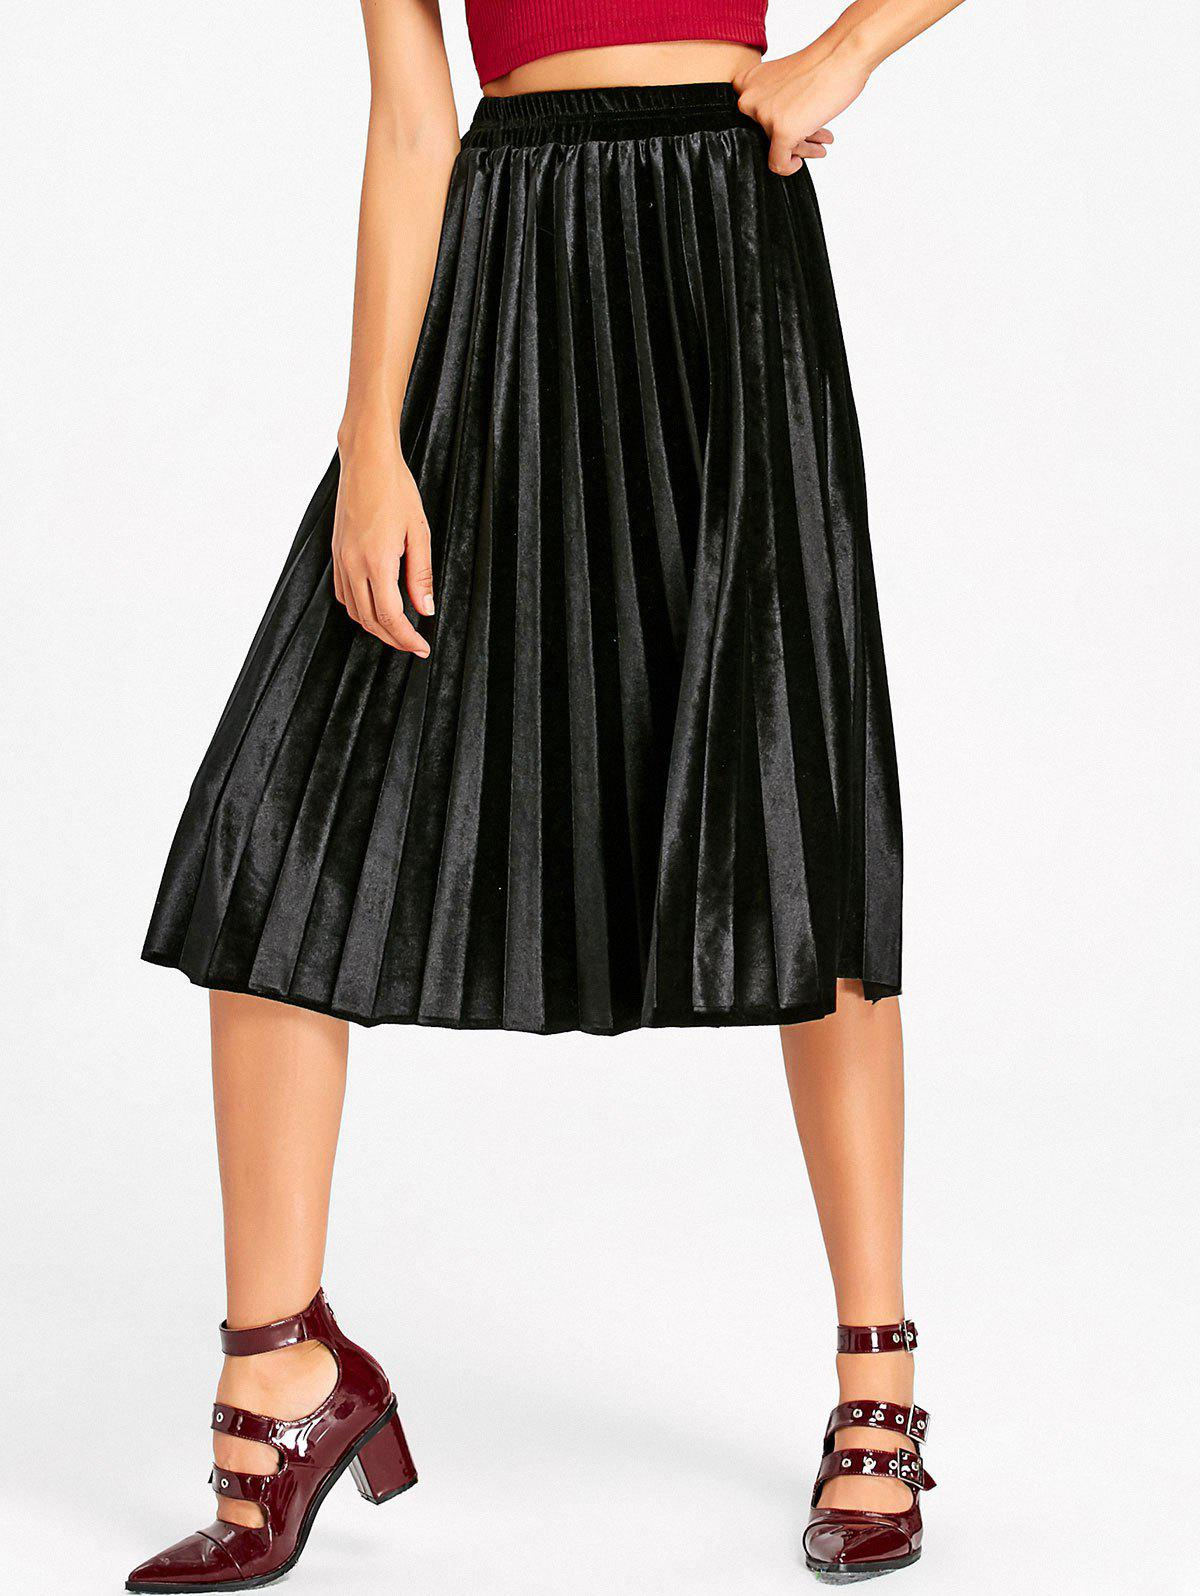 Midi High Waisted Velvet Pleated Skirt high waisted bodycon midi skirt